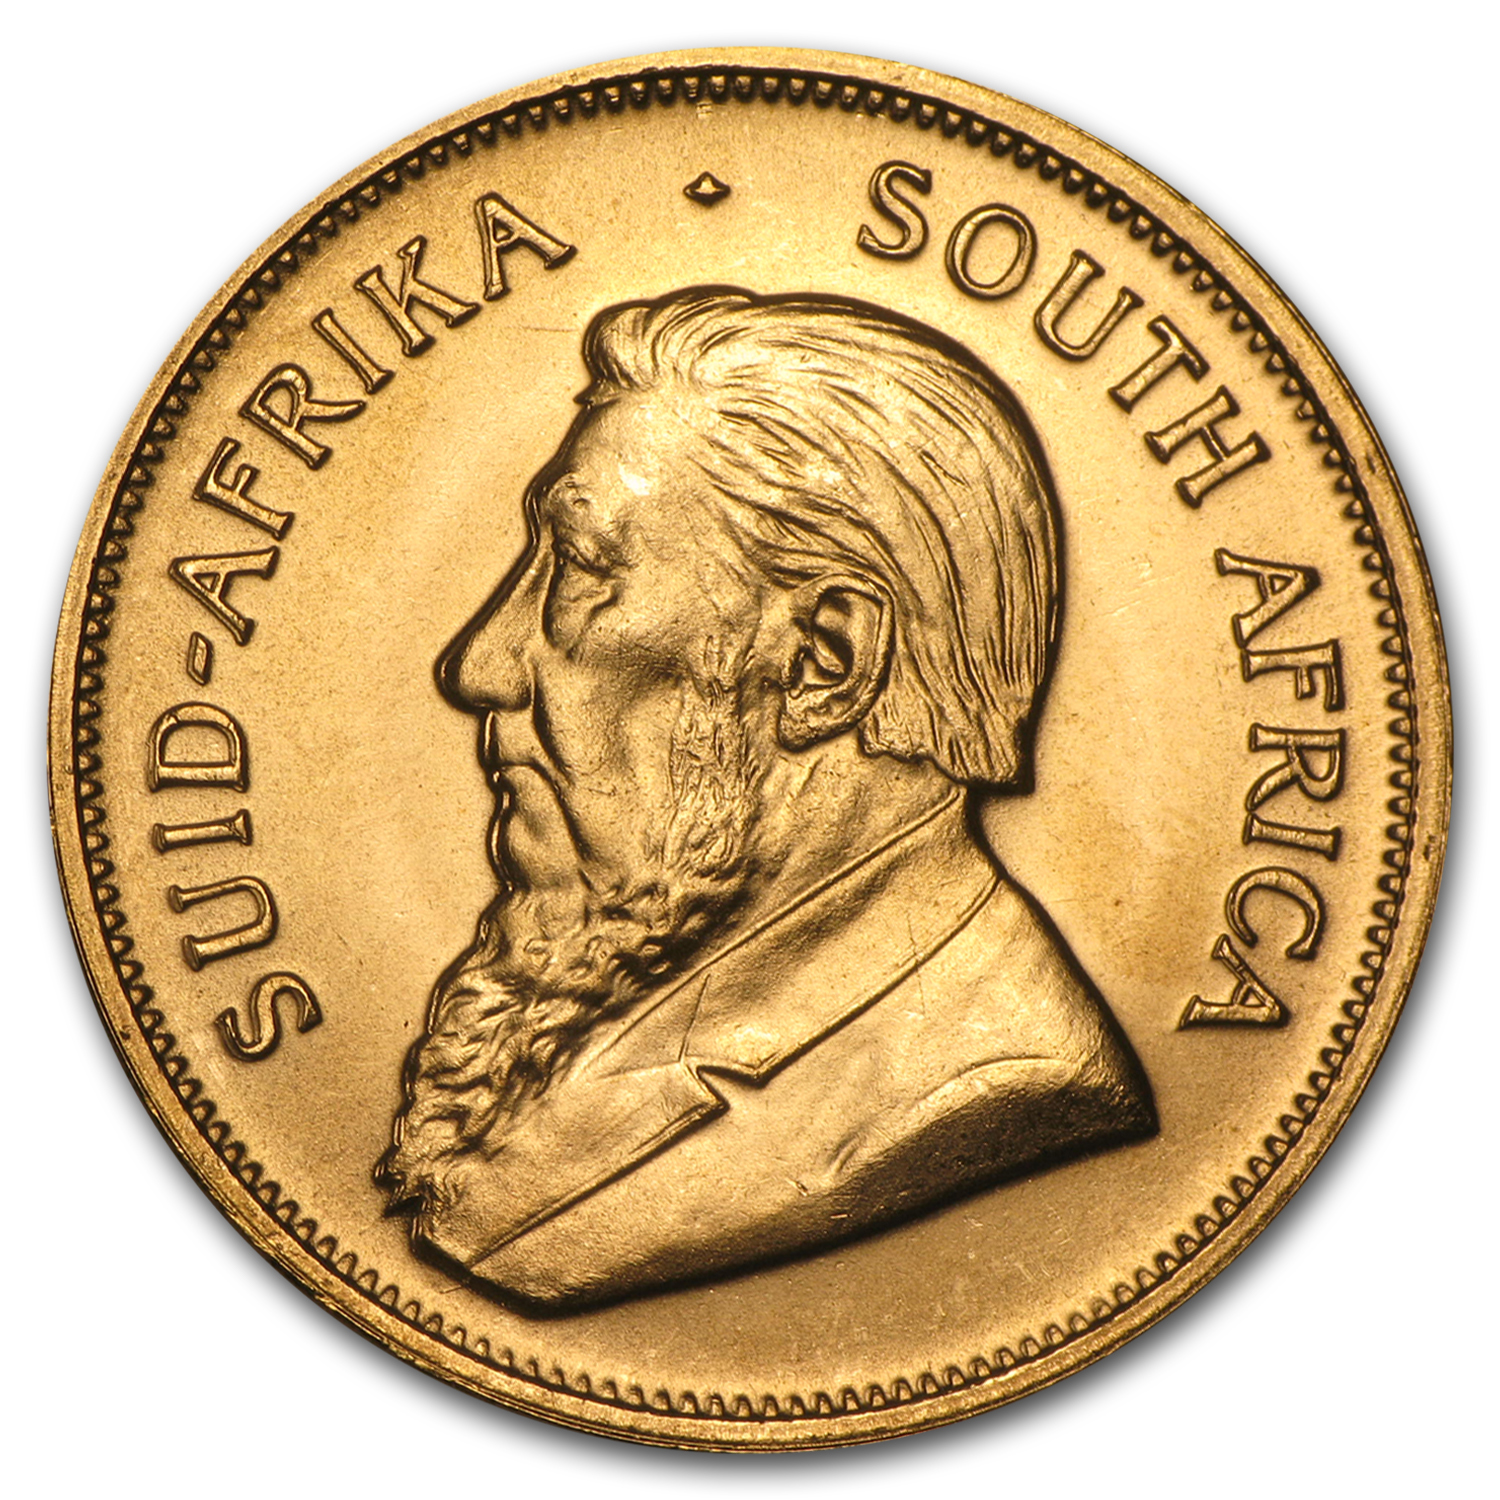 1976 South Africa 1 oz Gold Krugerrand